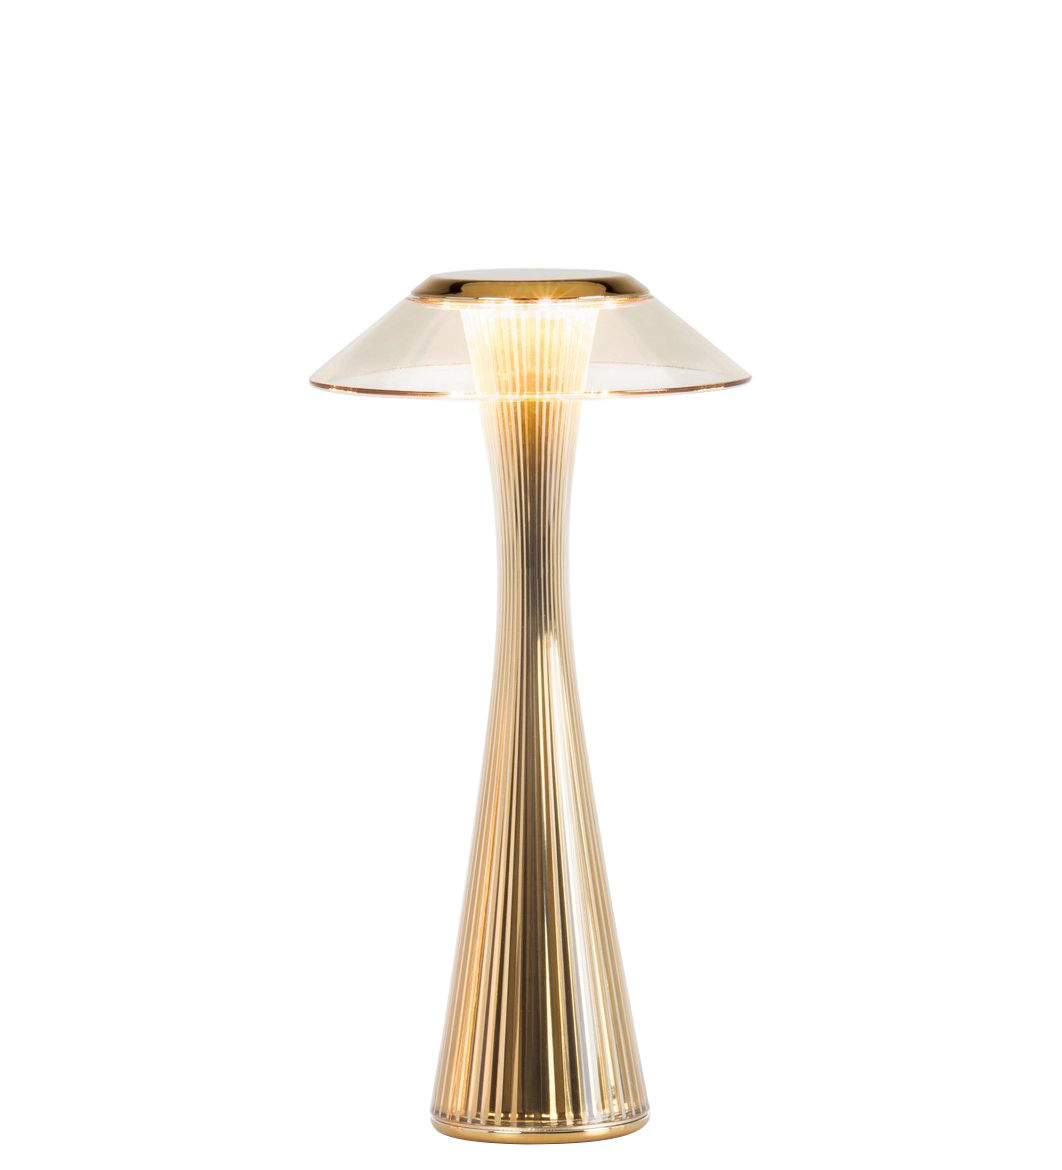 Lighting - Table Lamps - Space Outdoor Wireless lamp - / LED - Rechargeable by Kartell - Gold - ABS, PMMA